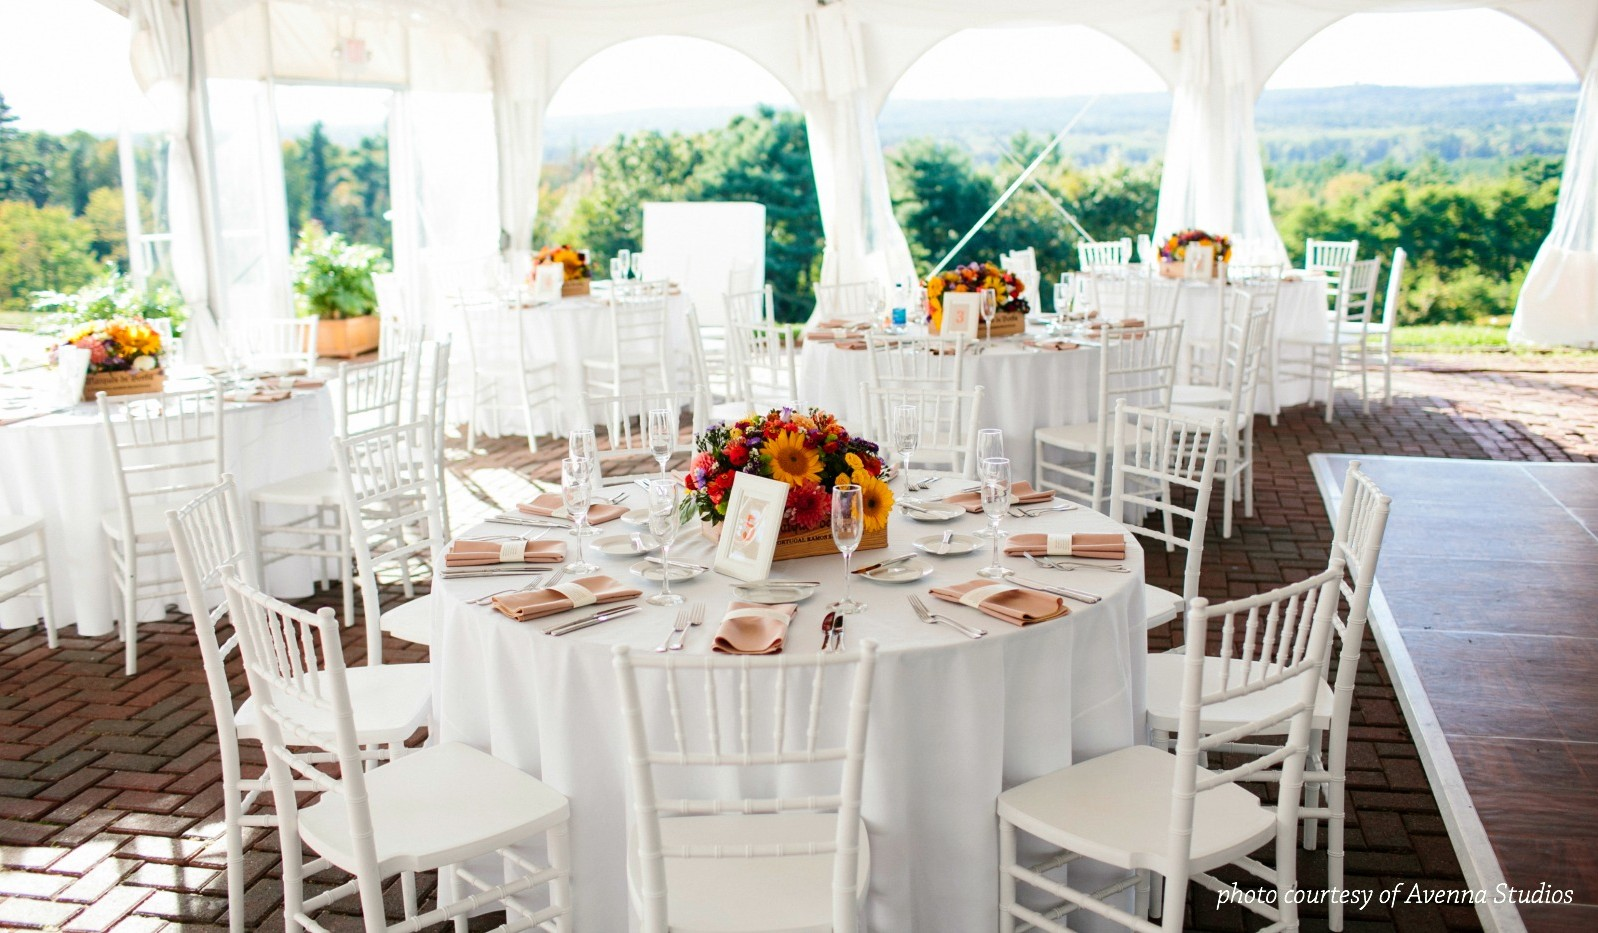 Dining room set for large event under tent with view of mountains and valley in background